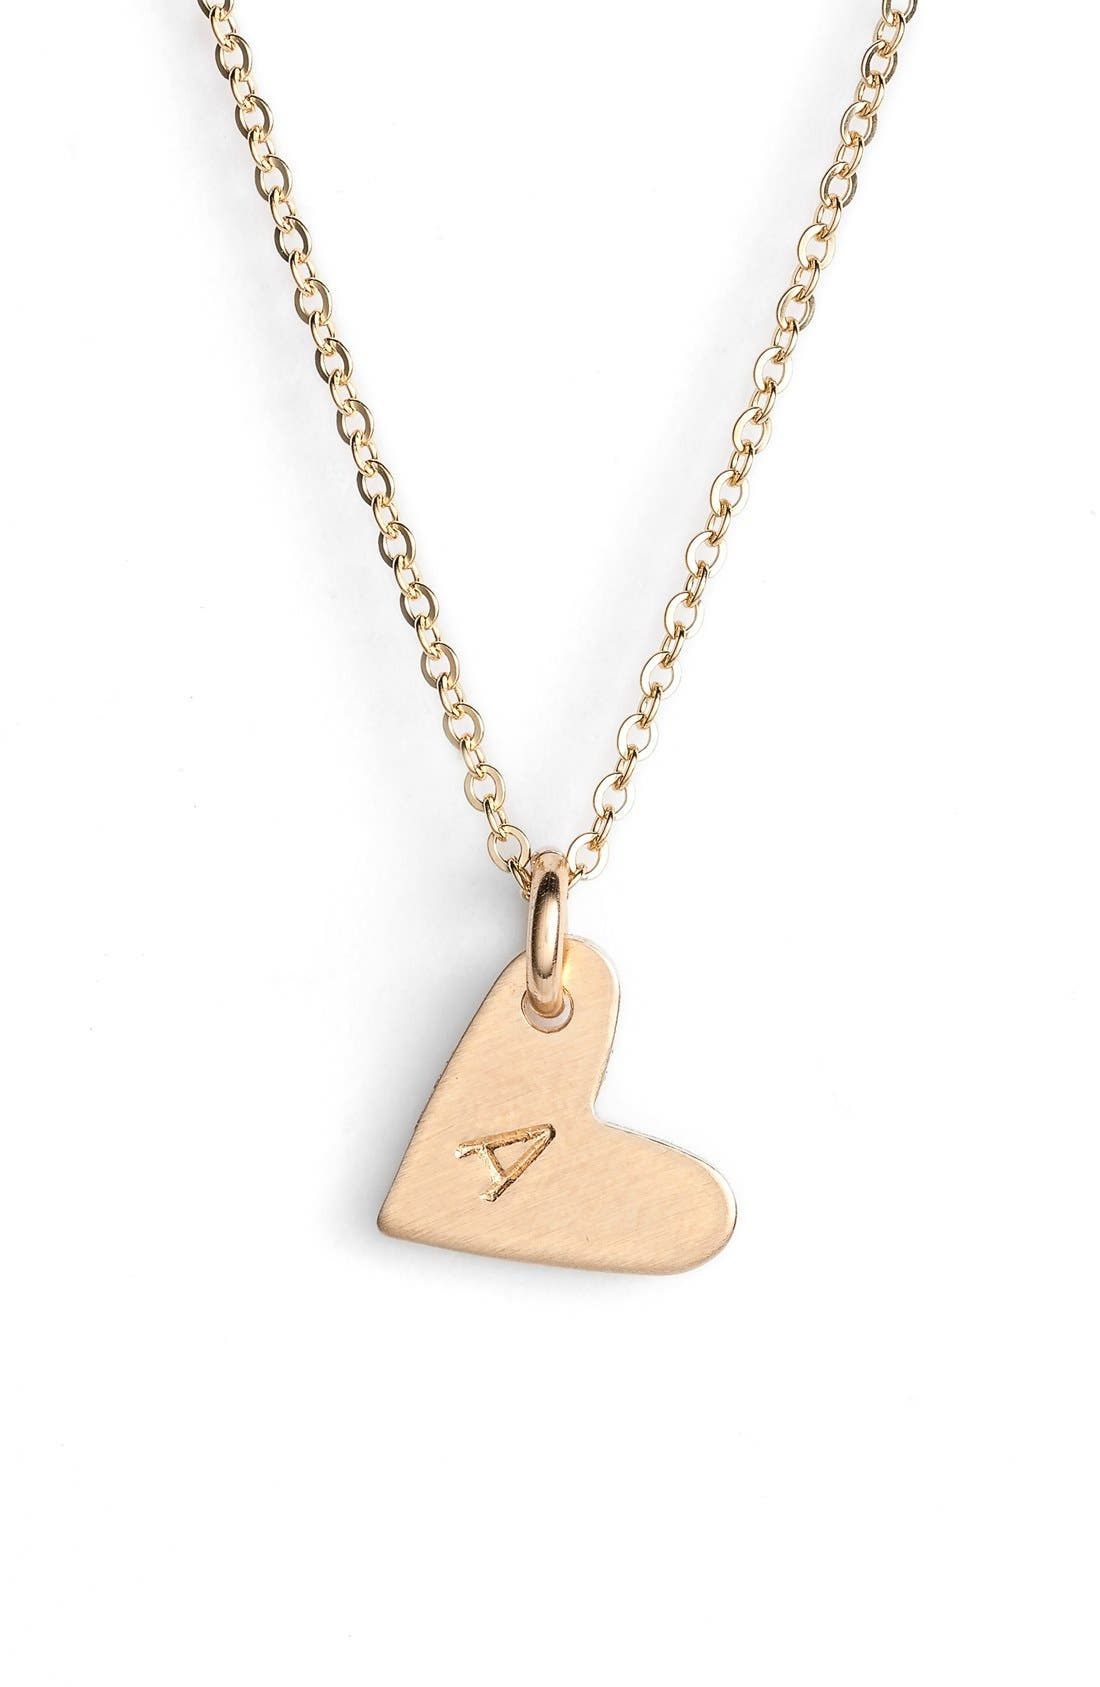 NASHELLE 14k-Gold Fill Initial Mini Heart Pendant Necklace, Main, color, GOLD/ A